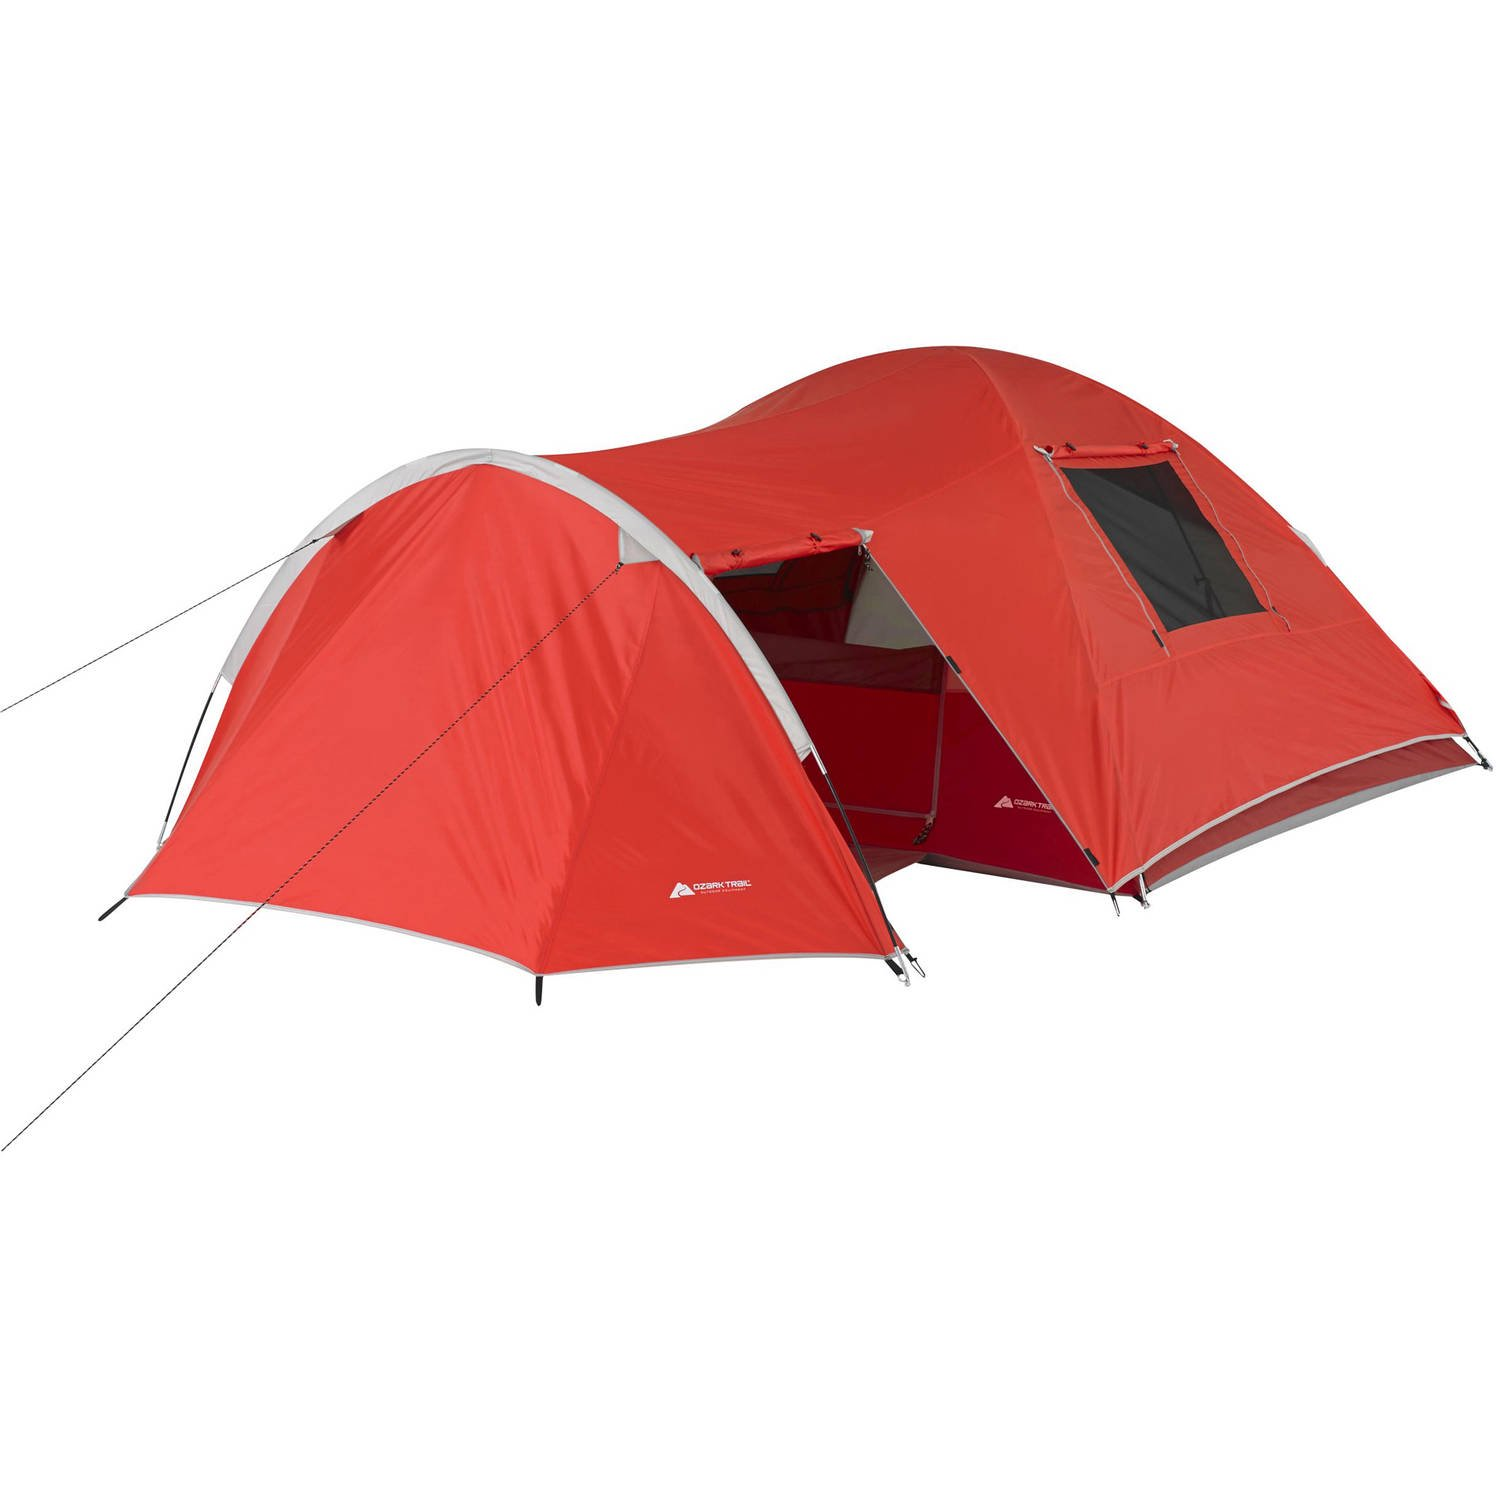 Ozark Trail 4-Person Dome Tent with Vestibule and Full Coverage Fly  sc 1 st  Walmart.com : tent with vestibule - memphite.com